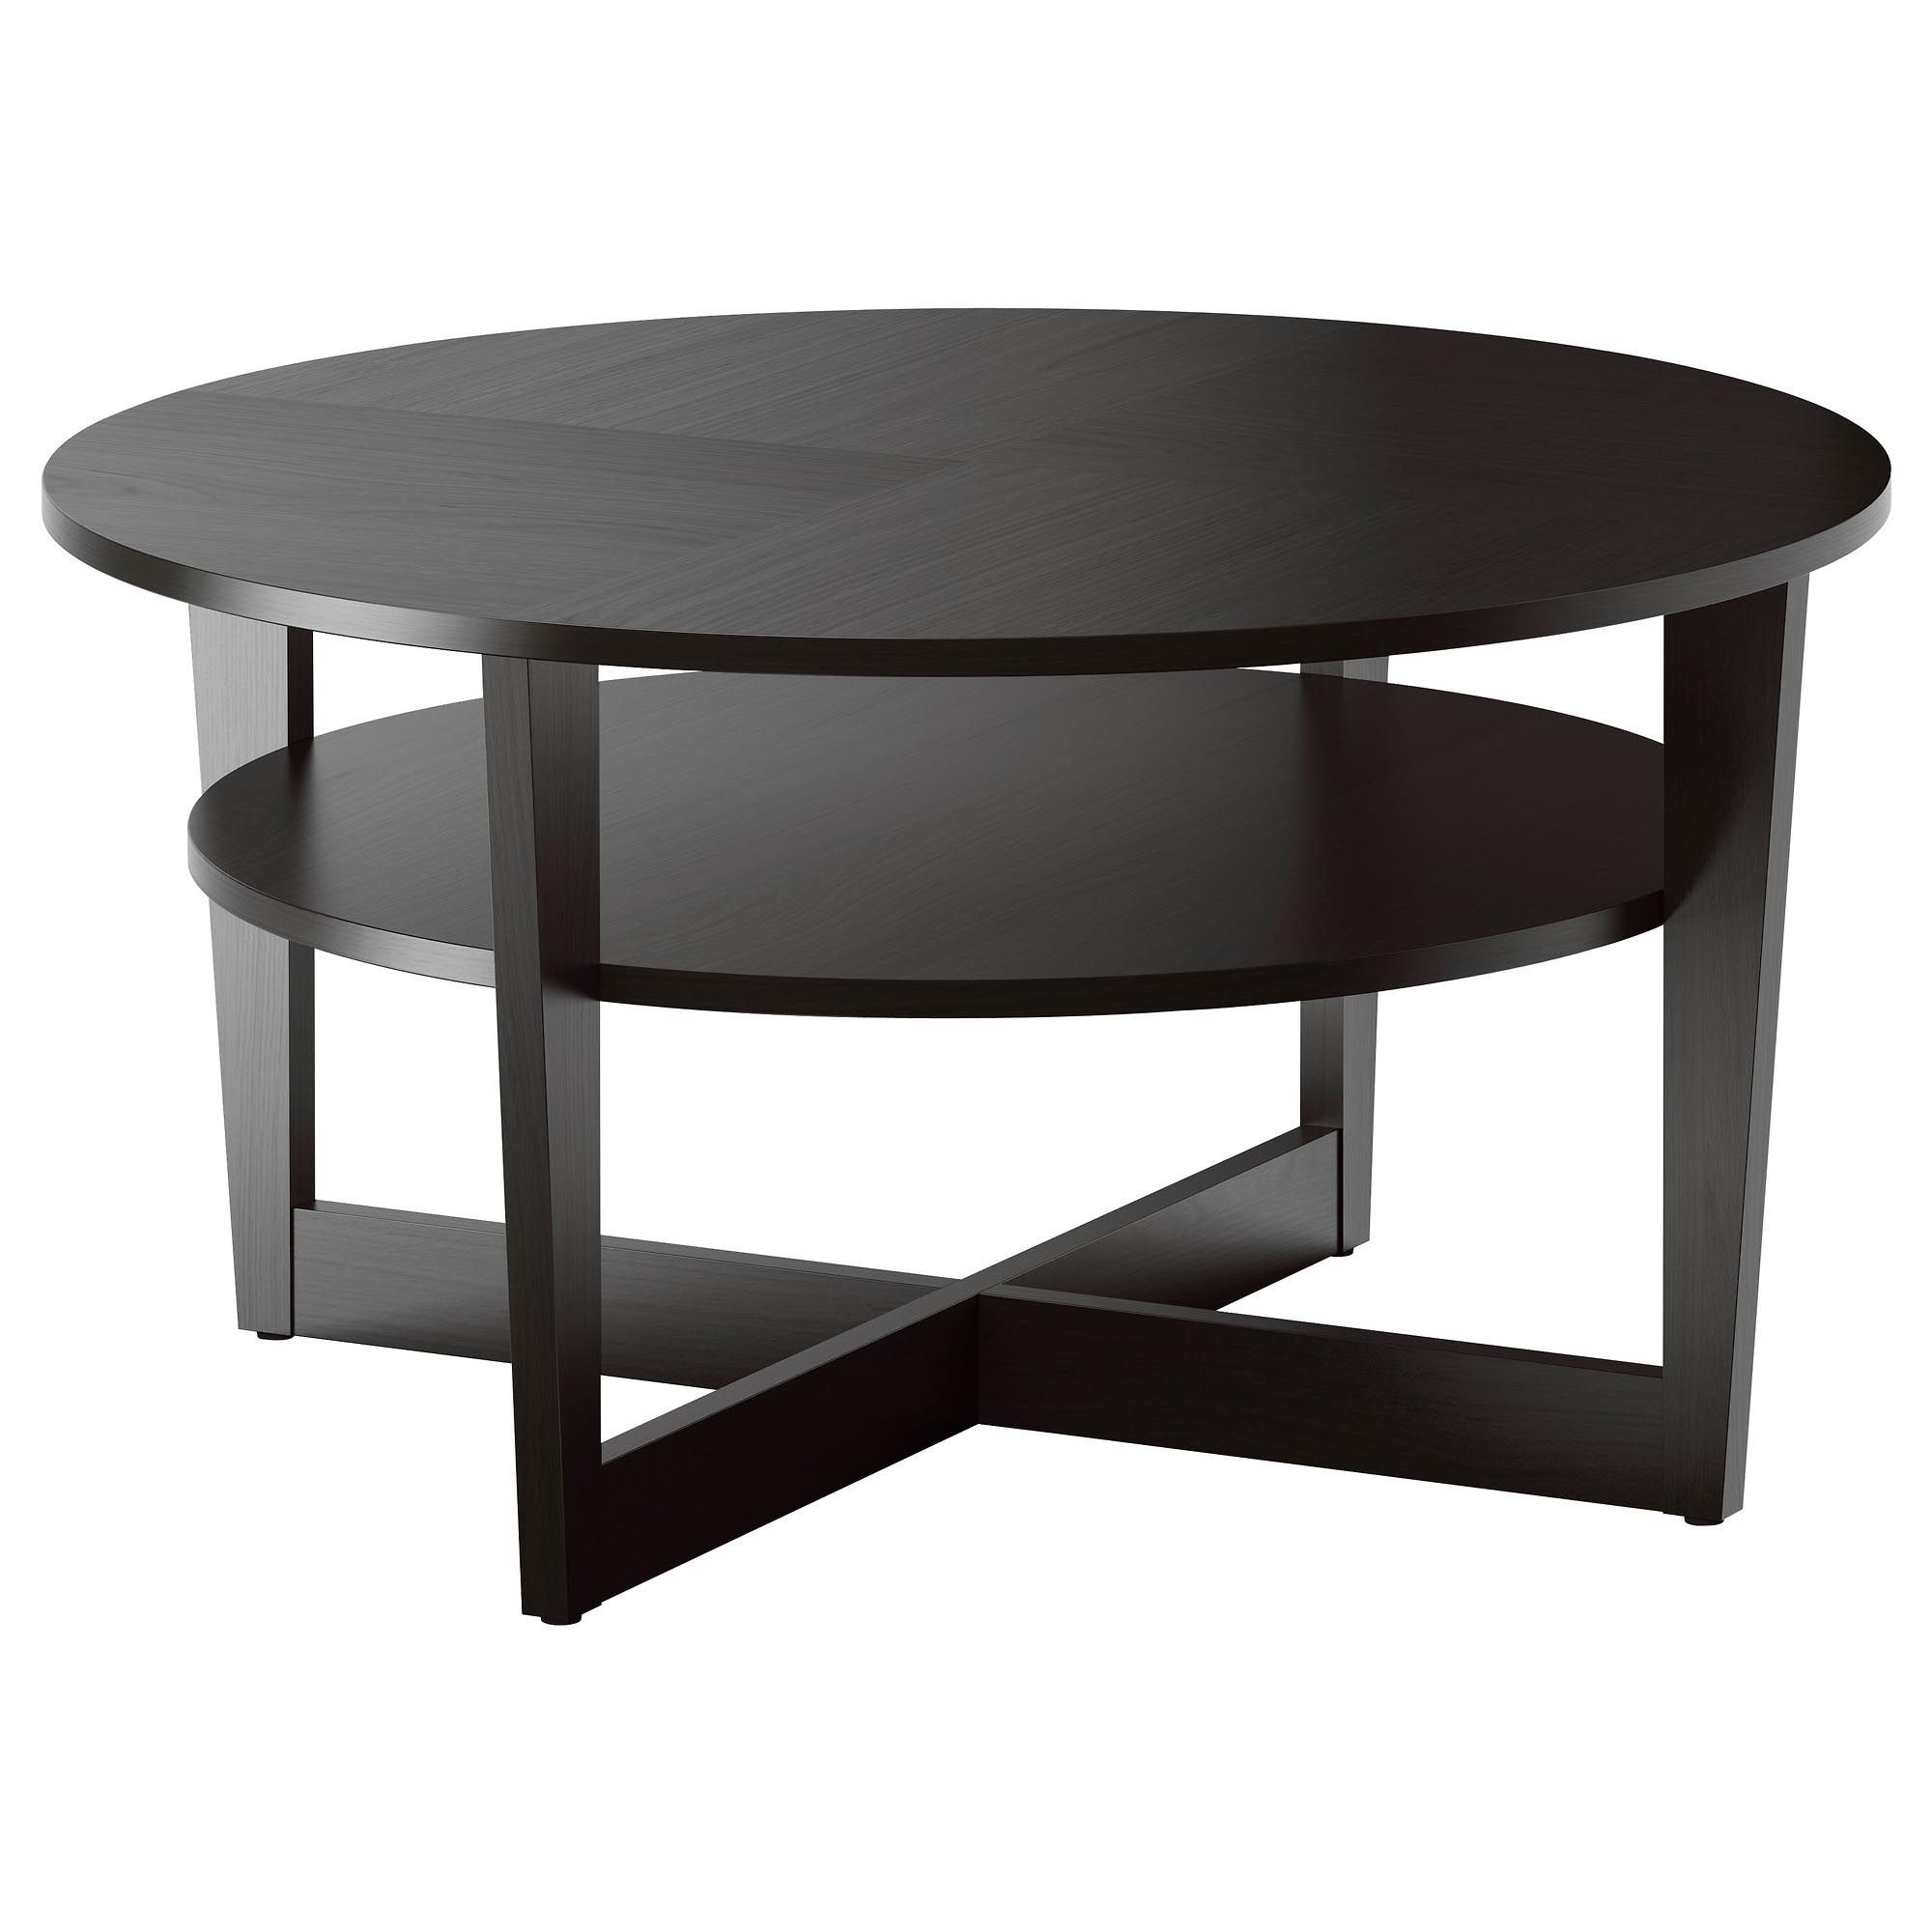 Small Tables Ikea 12 Small Square Coffee Tables Ikea Images